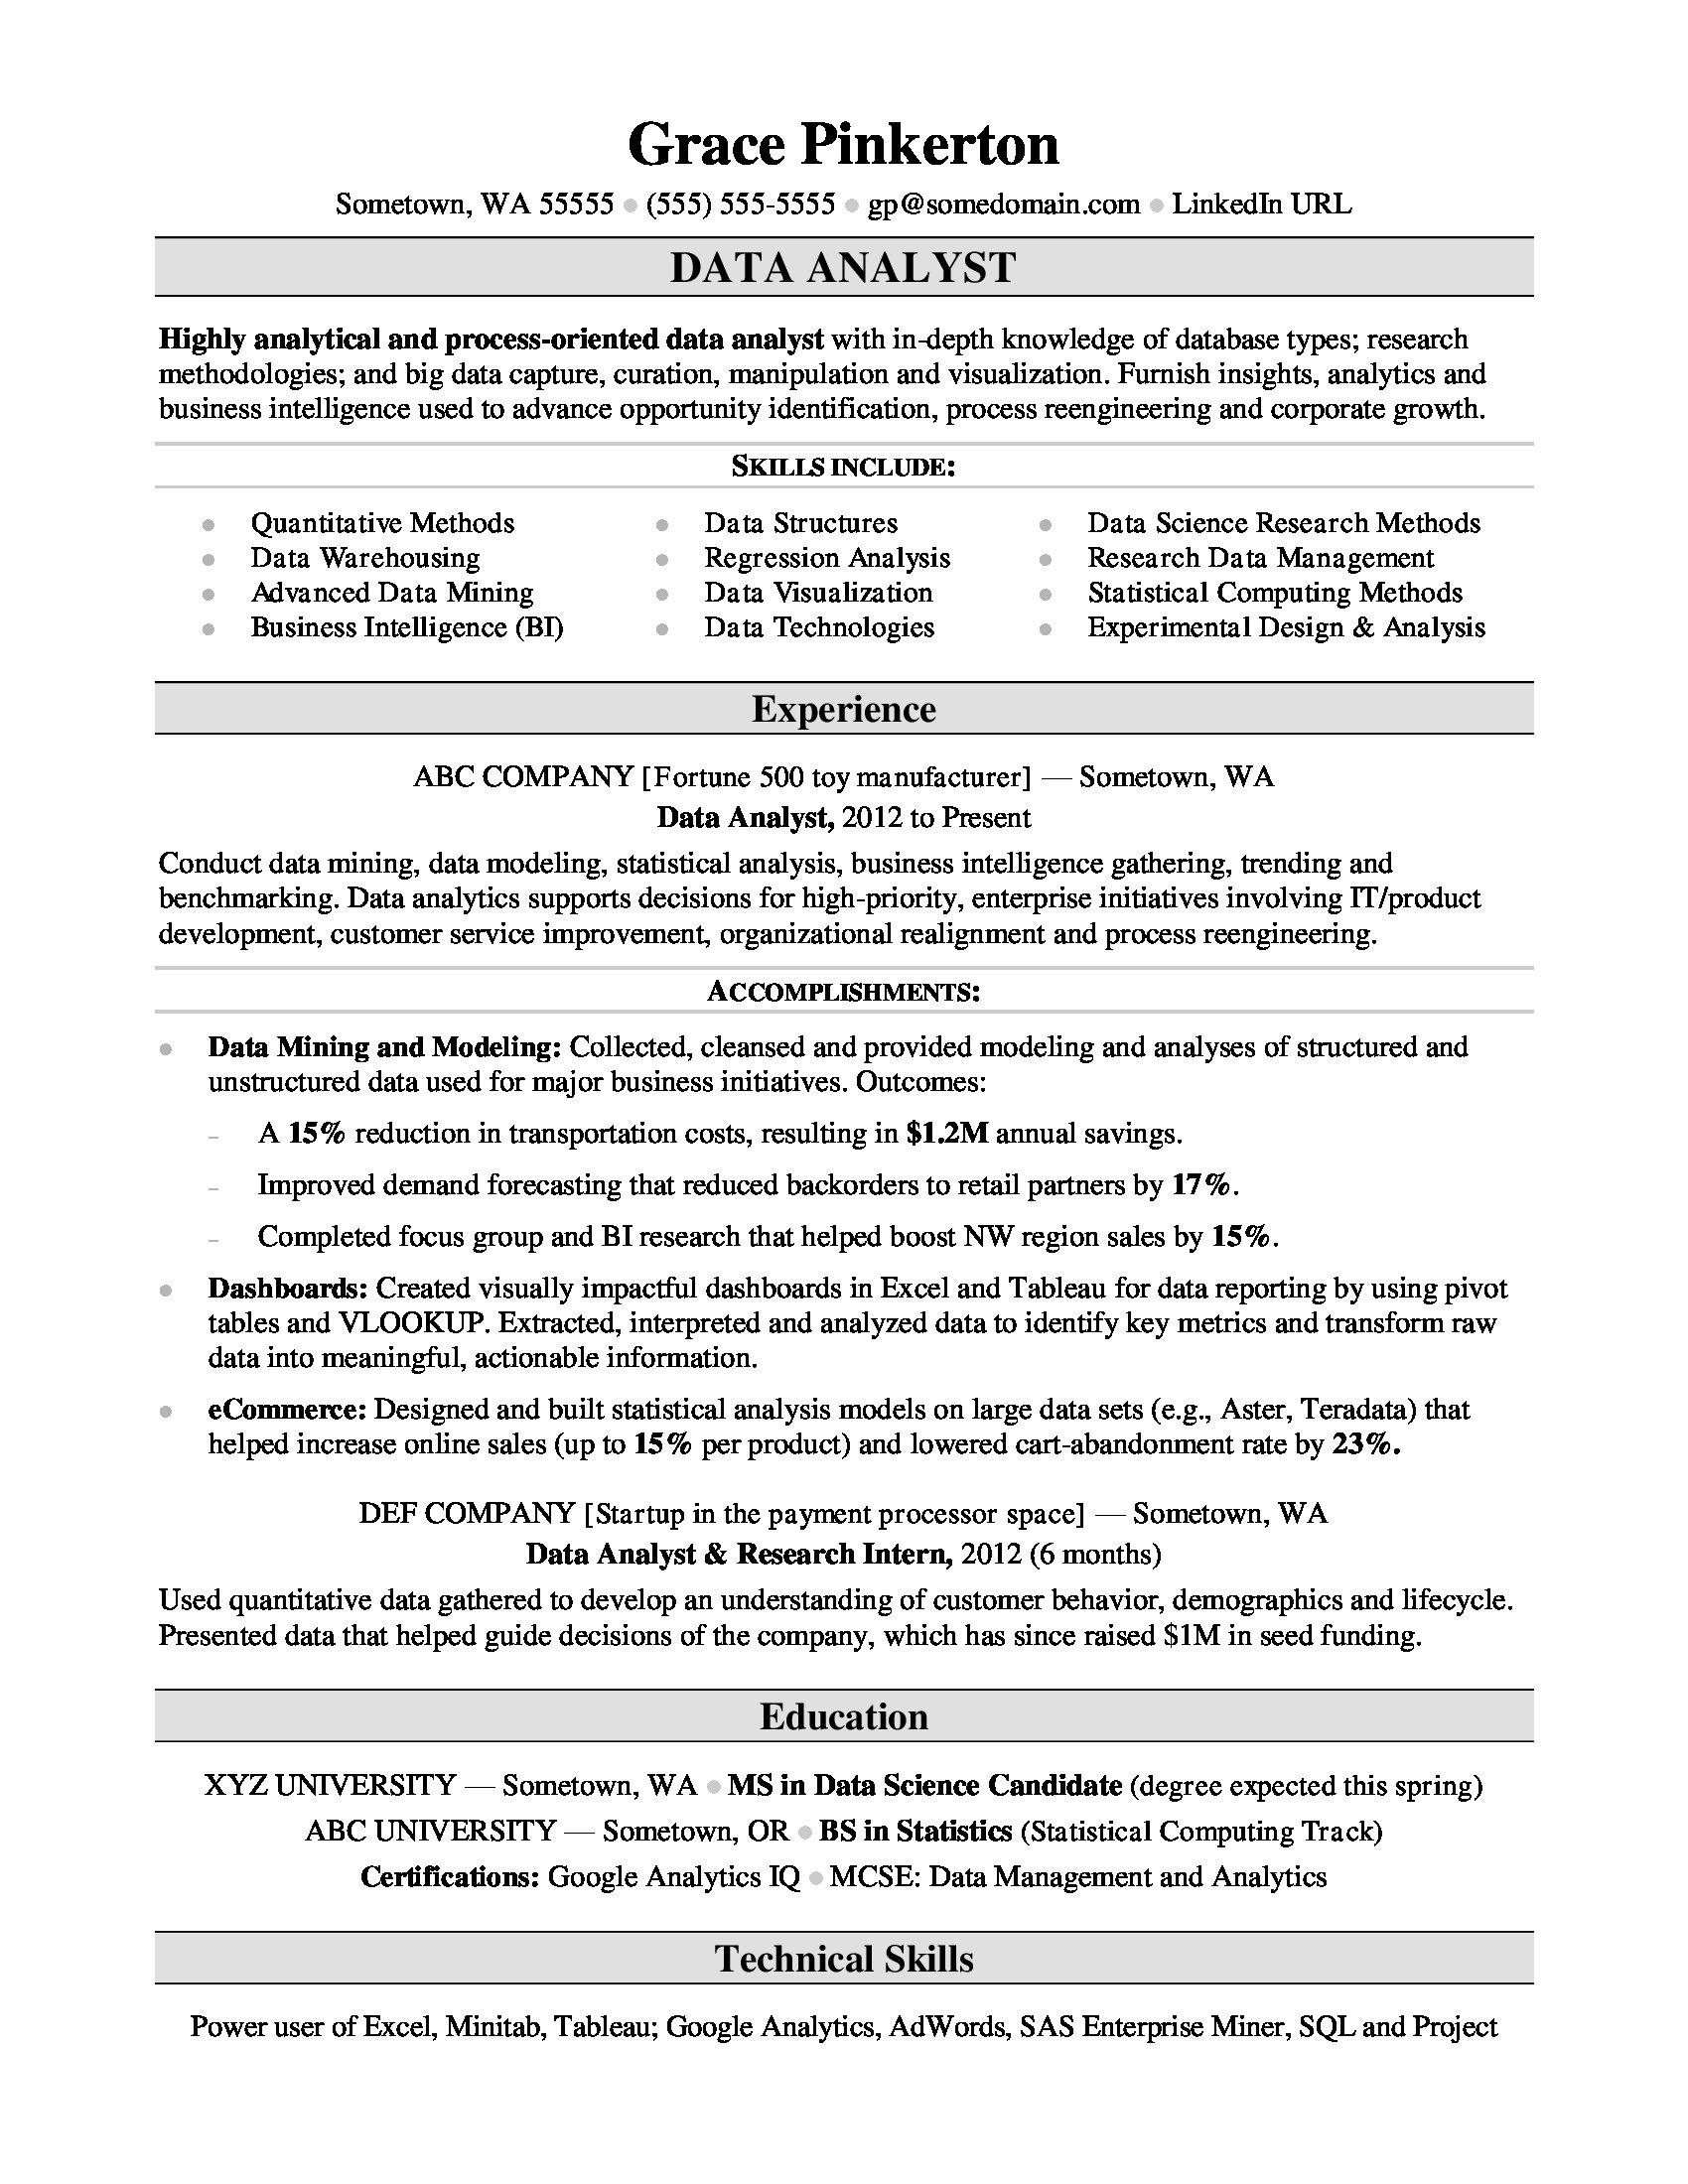 data analyst resume sample monster senior business intelligence dataanalyst medical Resume Senior Business Intelligence Analyst Resume